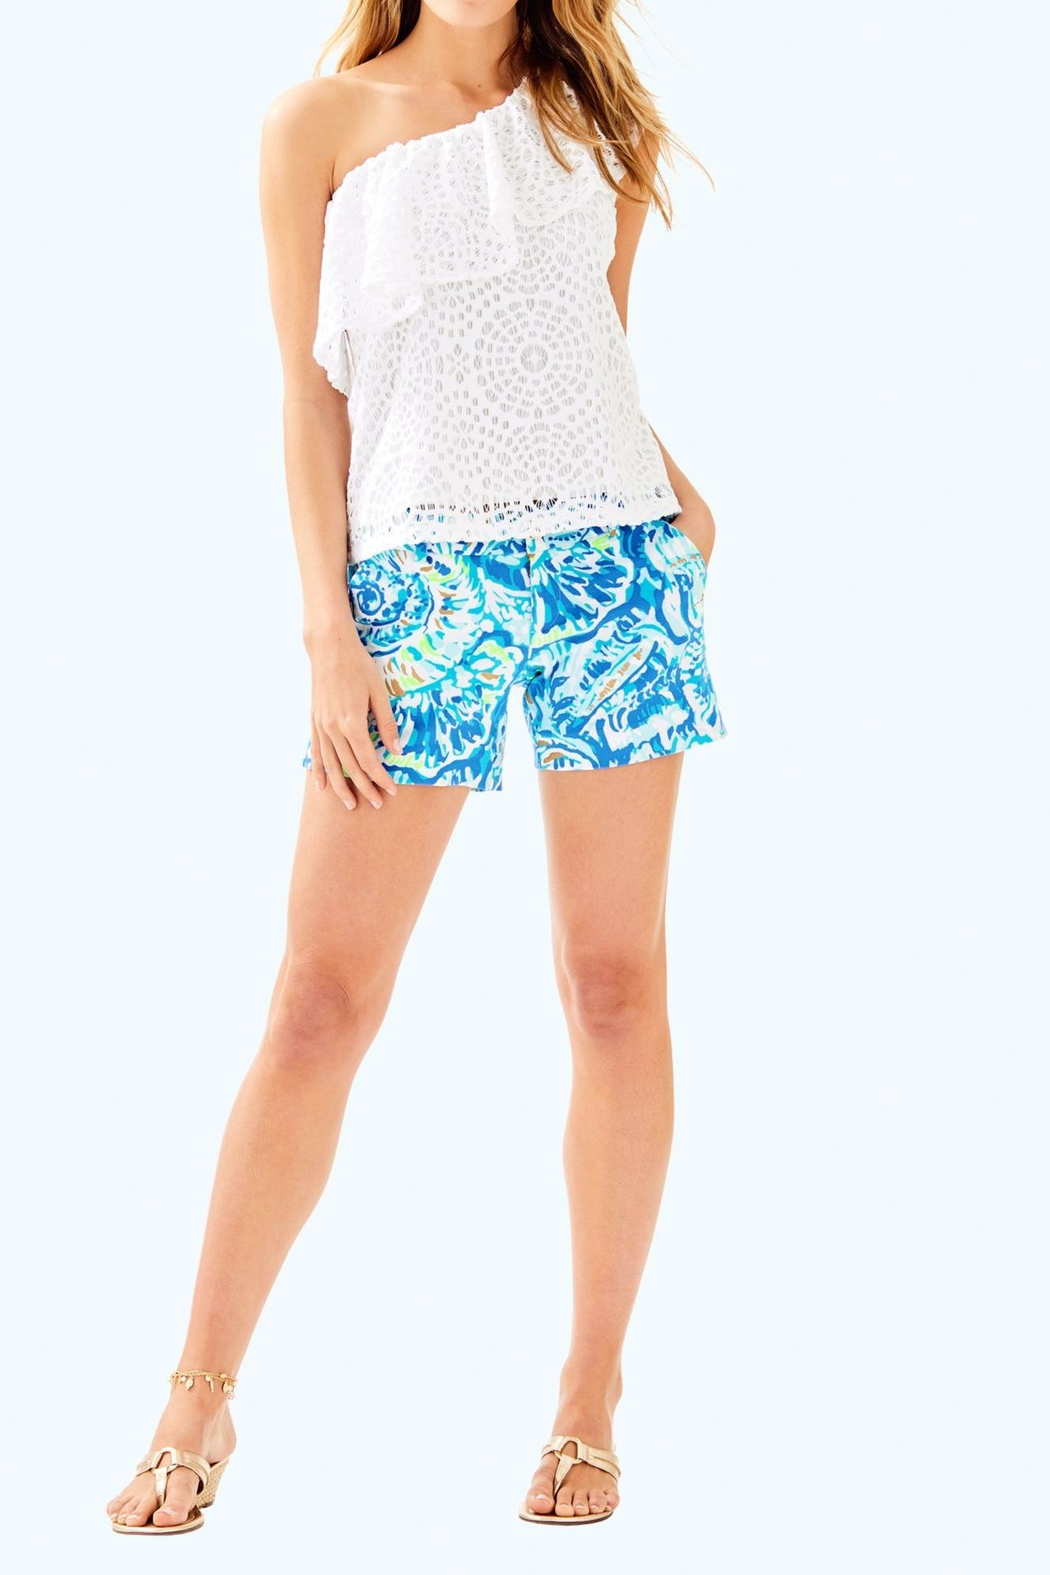 Lilly Pulitzer Matteo Top - Side Cropped Image